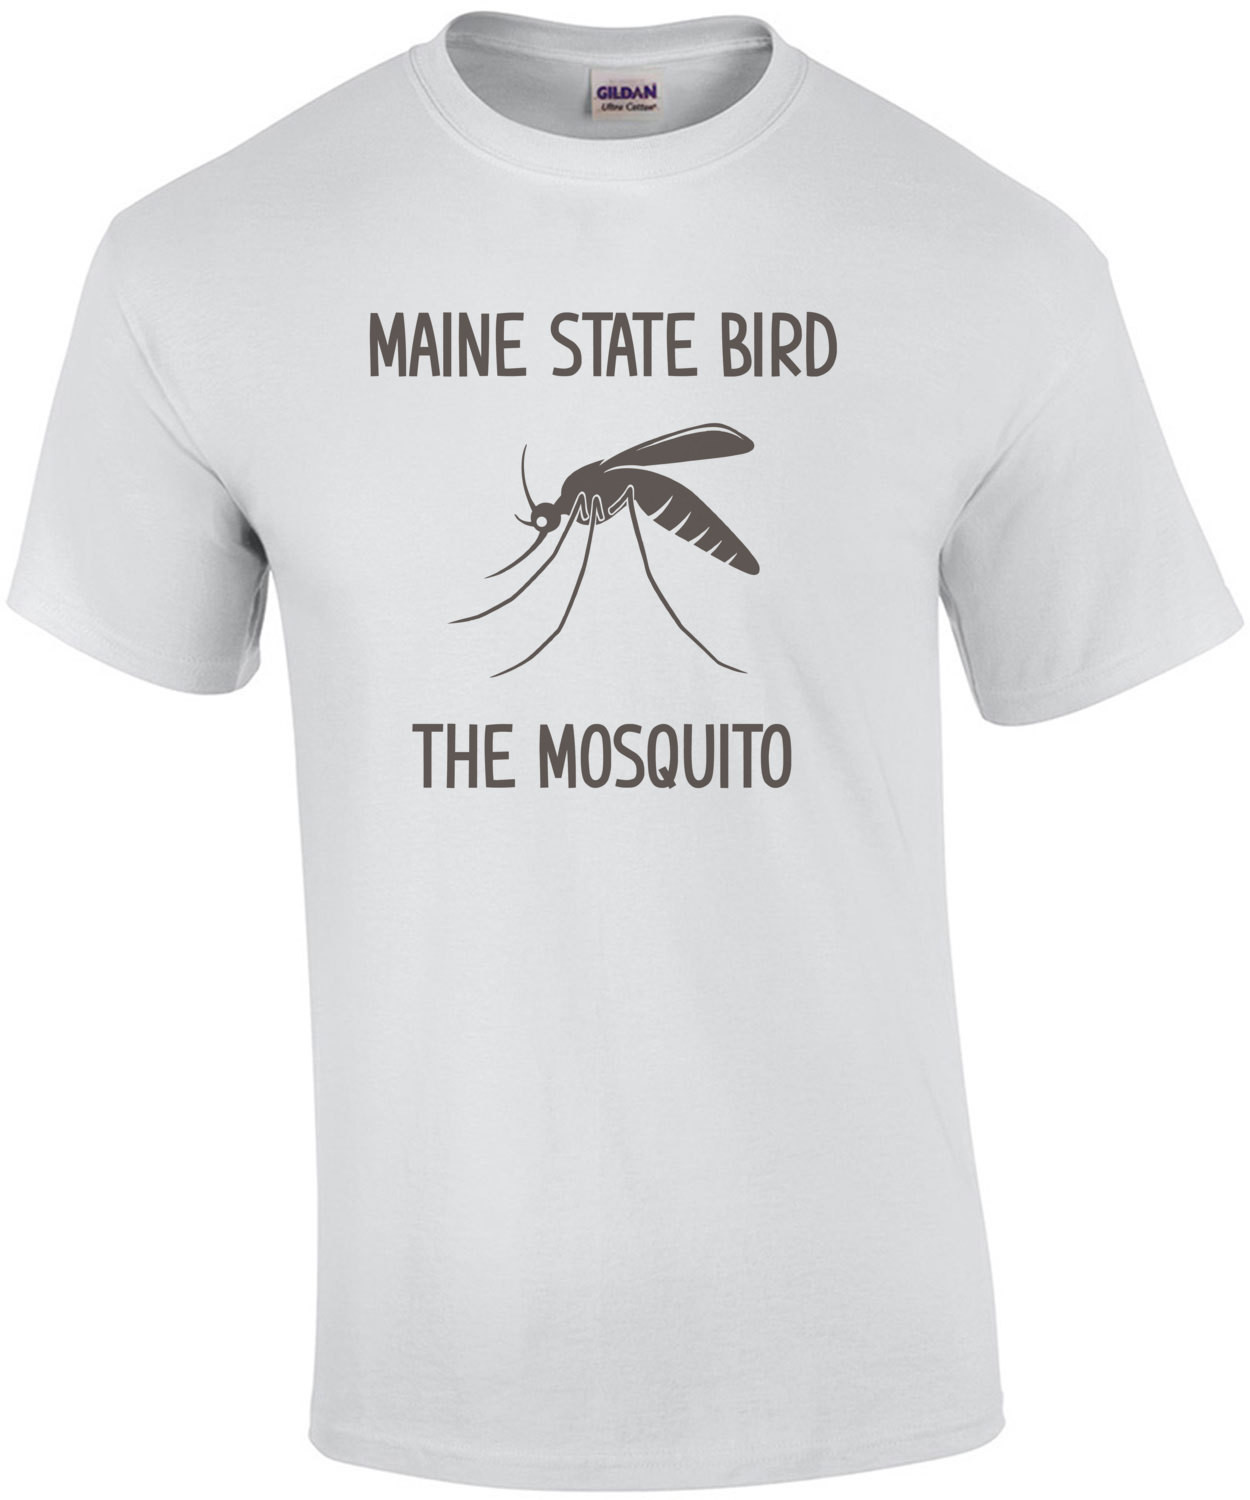 Maine State Bird The Mosquito - Funny Maine T-Shirt